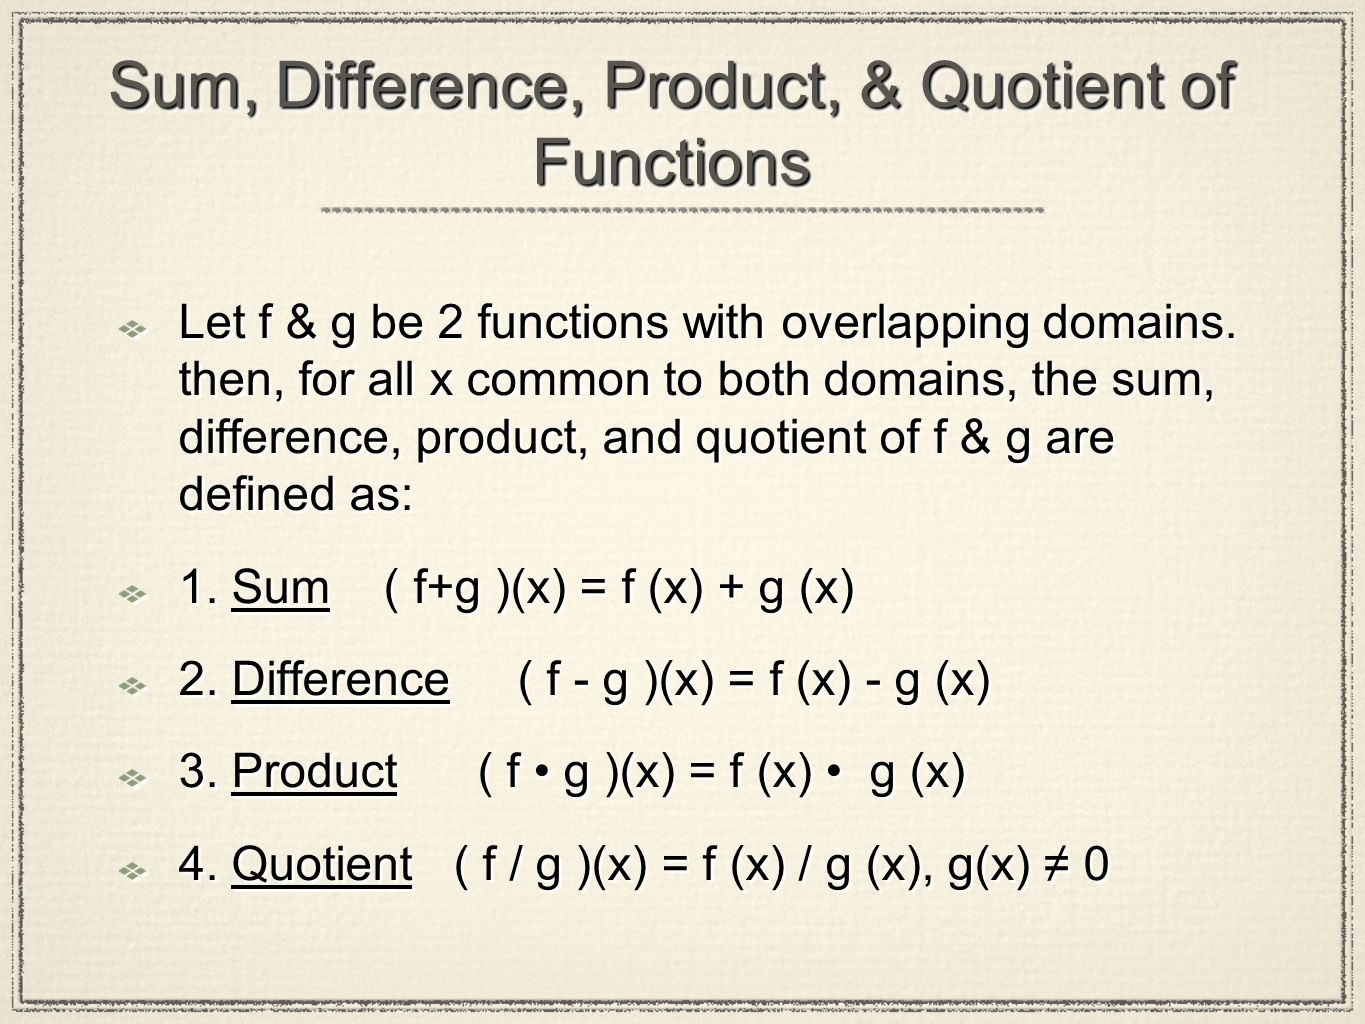 Sum, Difference, Product, & Quotient of Functions